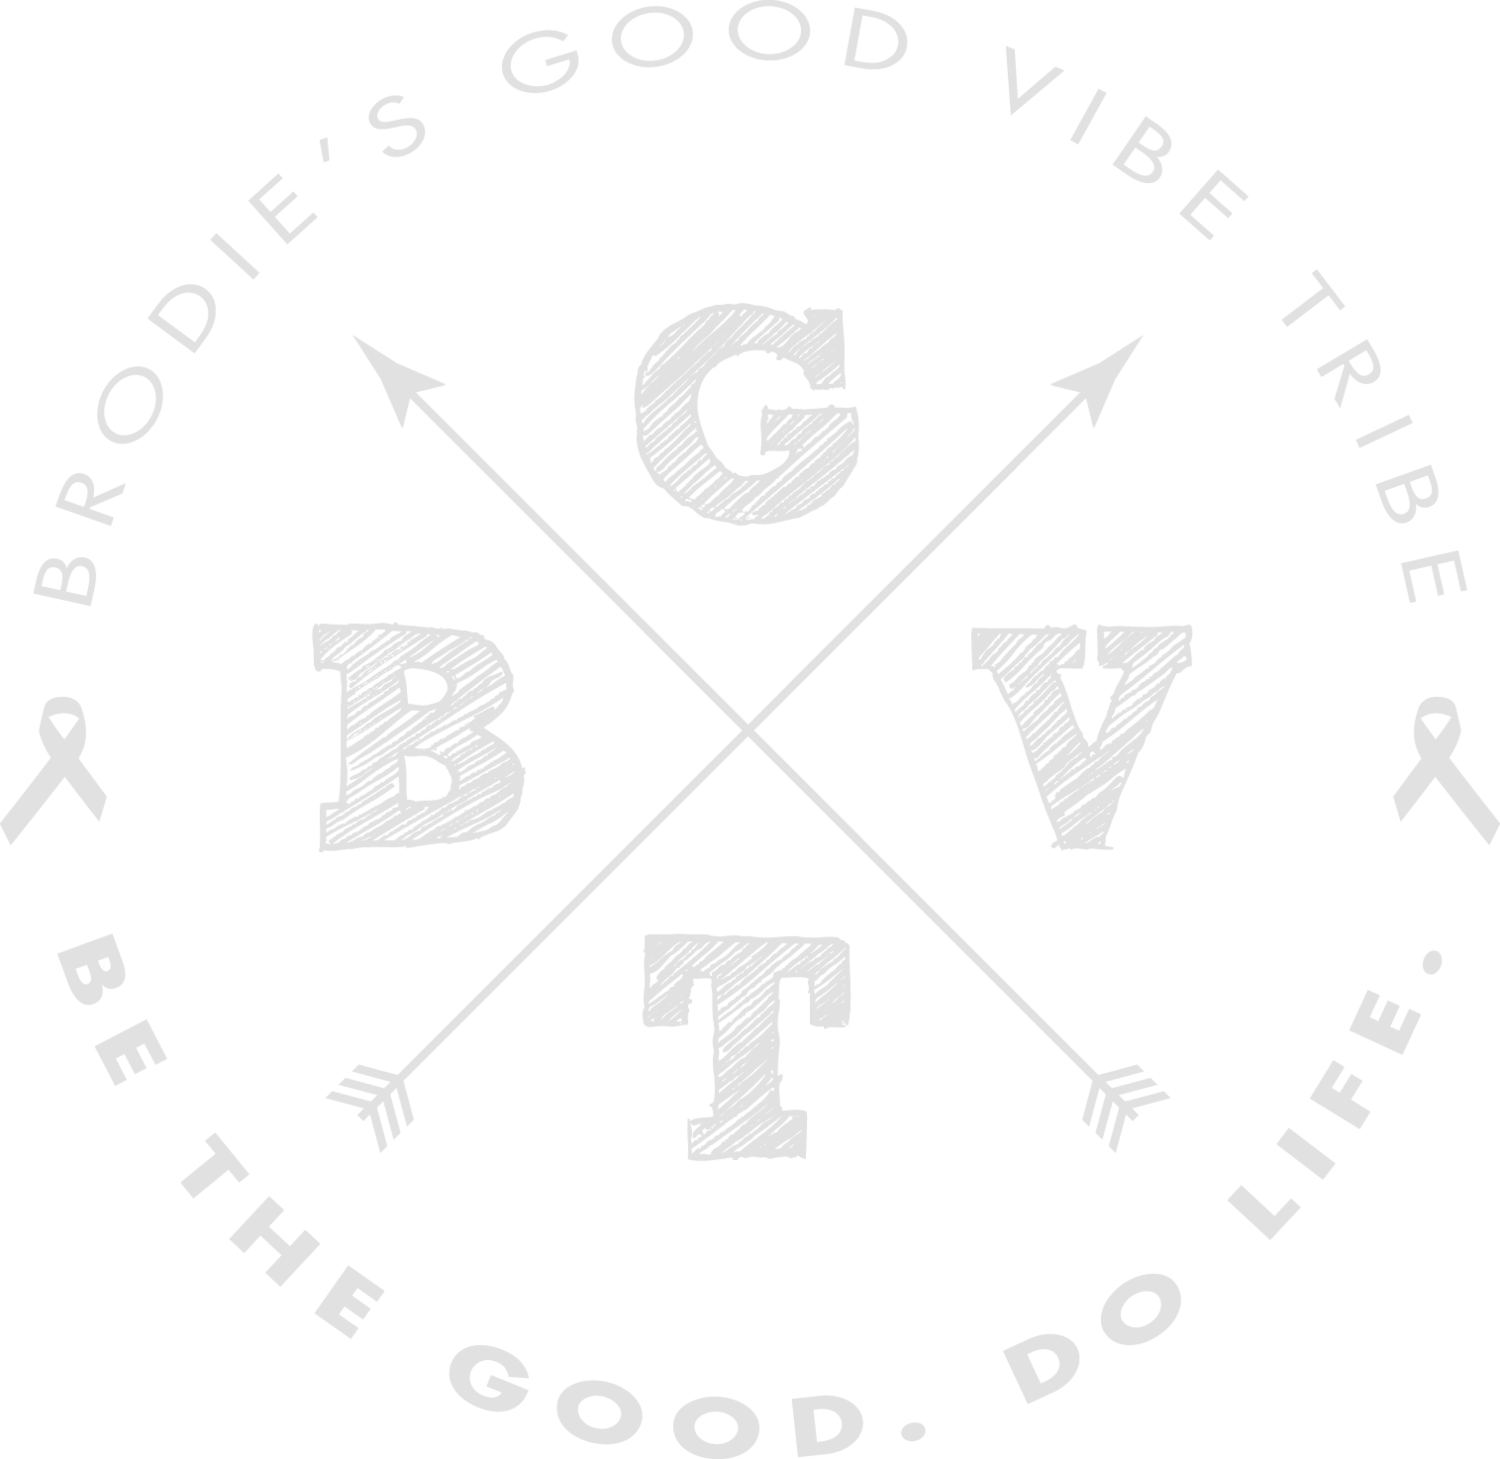 Brodie's Good Vibe Tribe